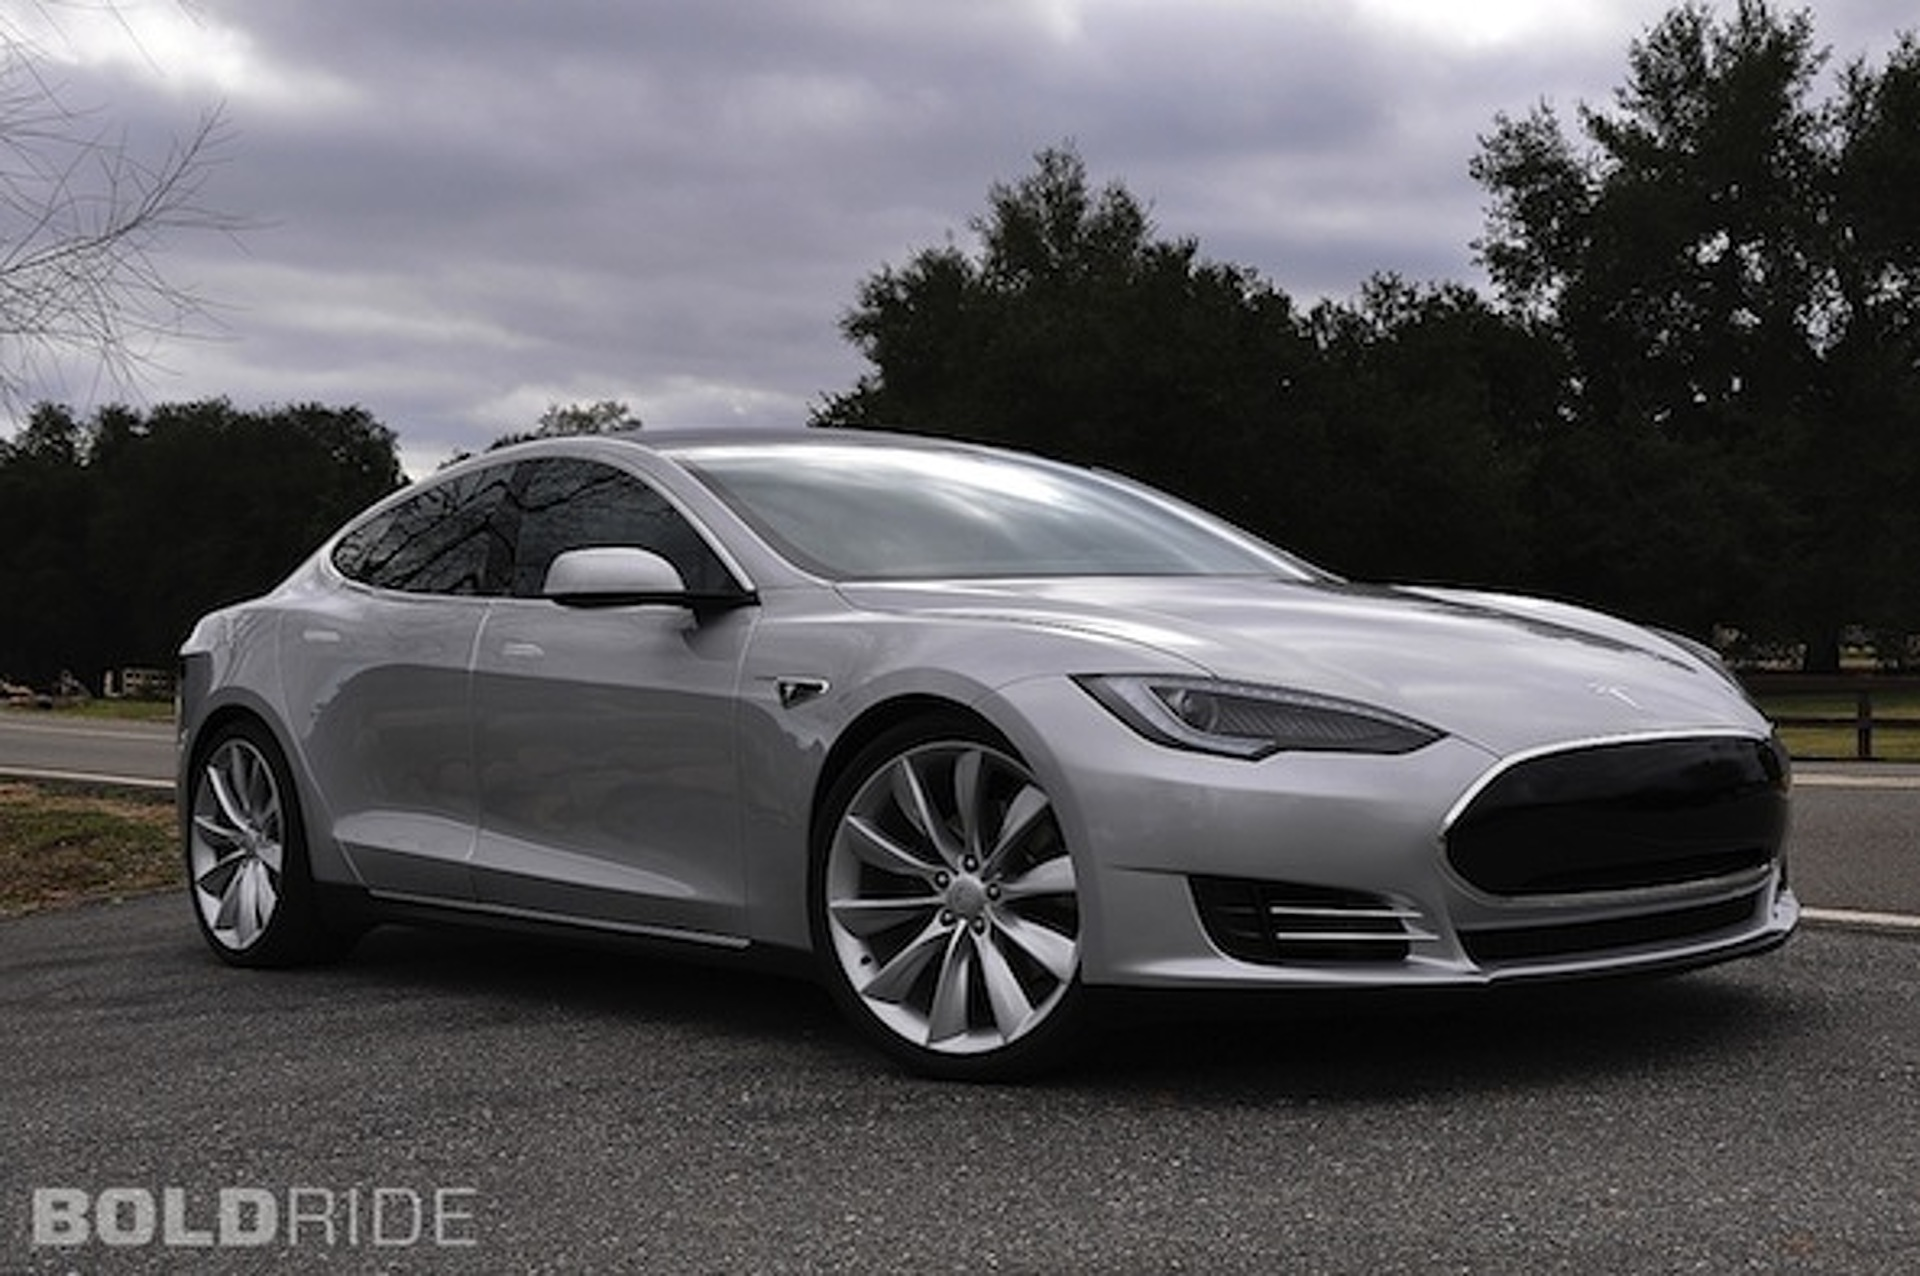 Just Kidding! Five Cars That Aren't as Green as You Think